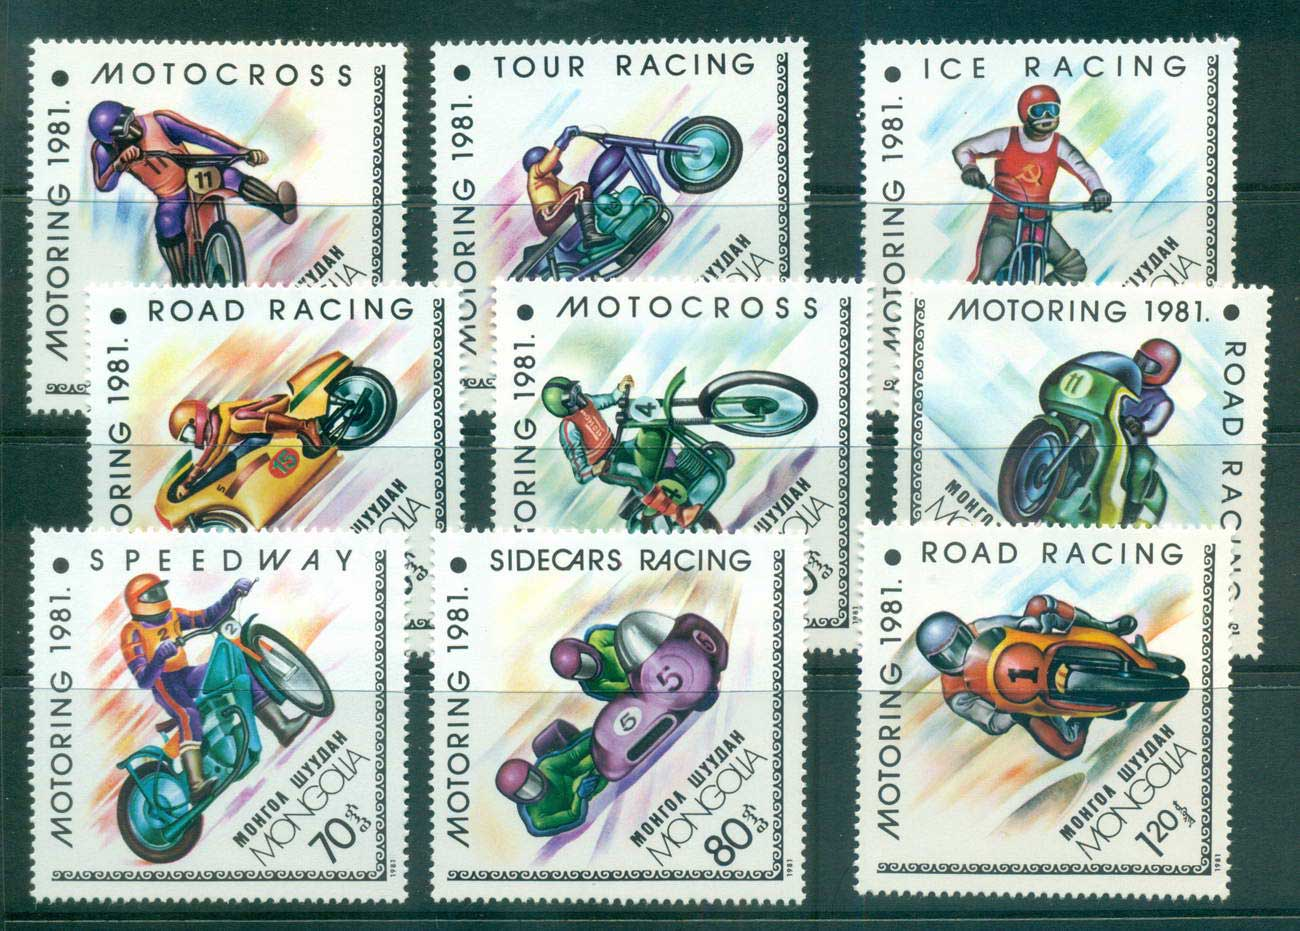 Mongolia 1981 Motoring Motor Cycles MUH lot56004